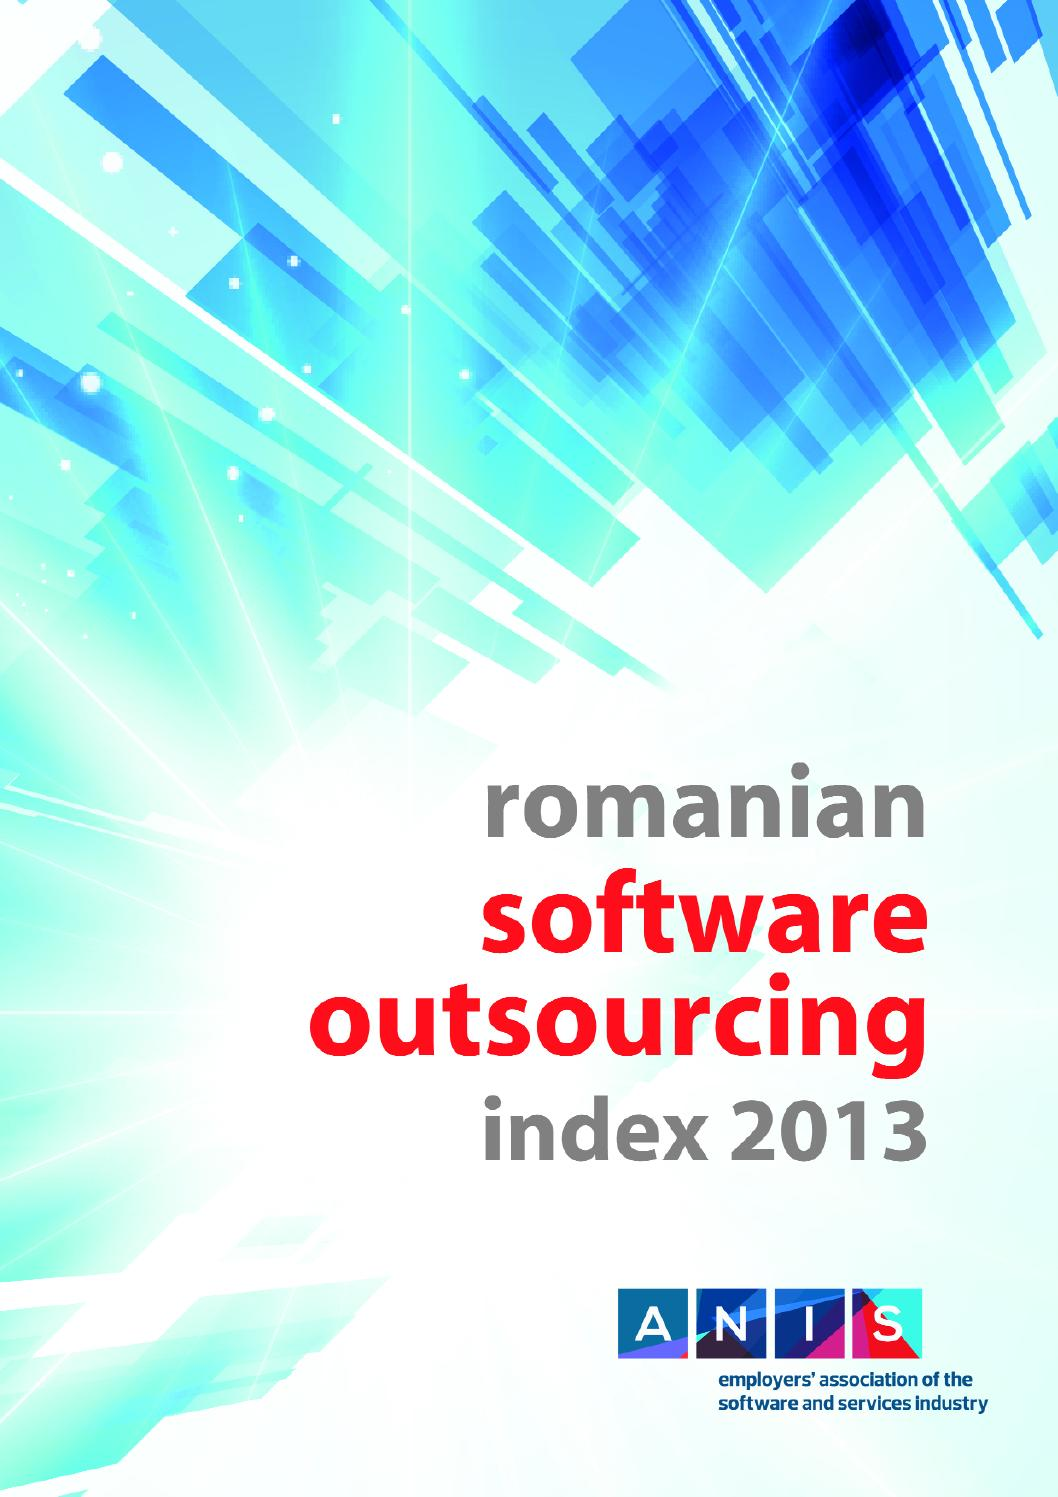 Romanian software outsourcing index 2013 by ANIS_Romania - issuu